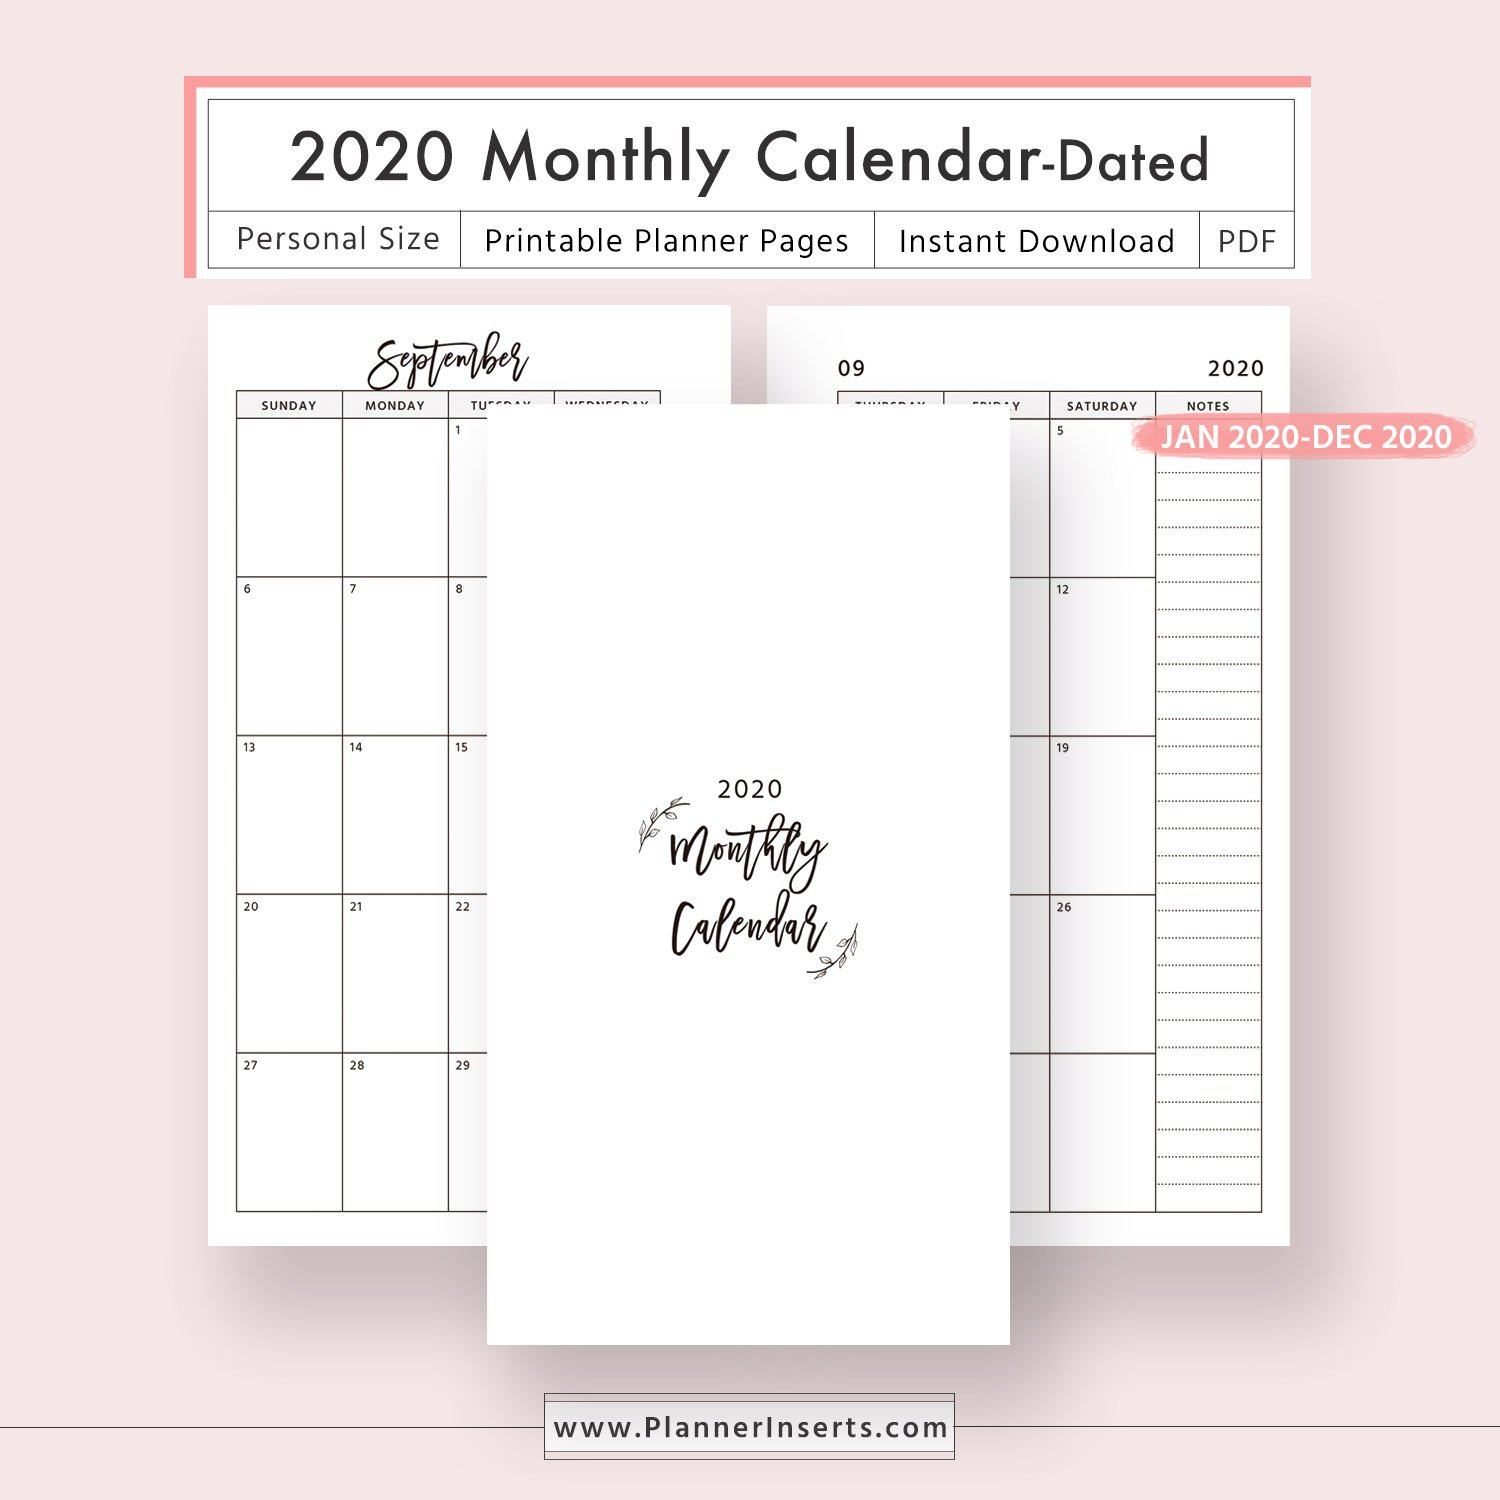 2020 Dated Monthly Calendar For Unlimited Instant Download for Free Digital Planner Pdf Dowload